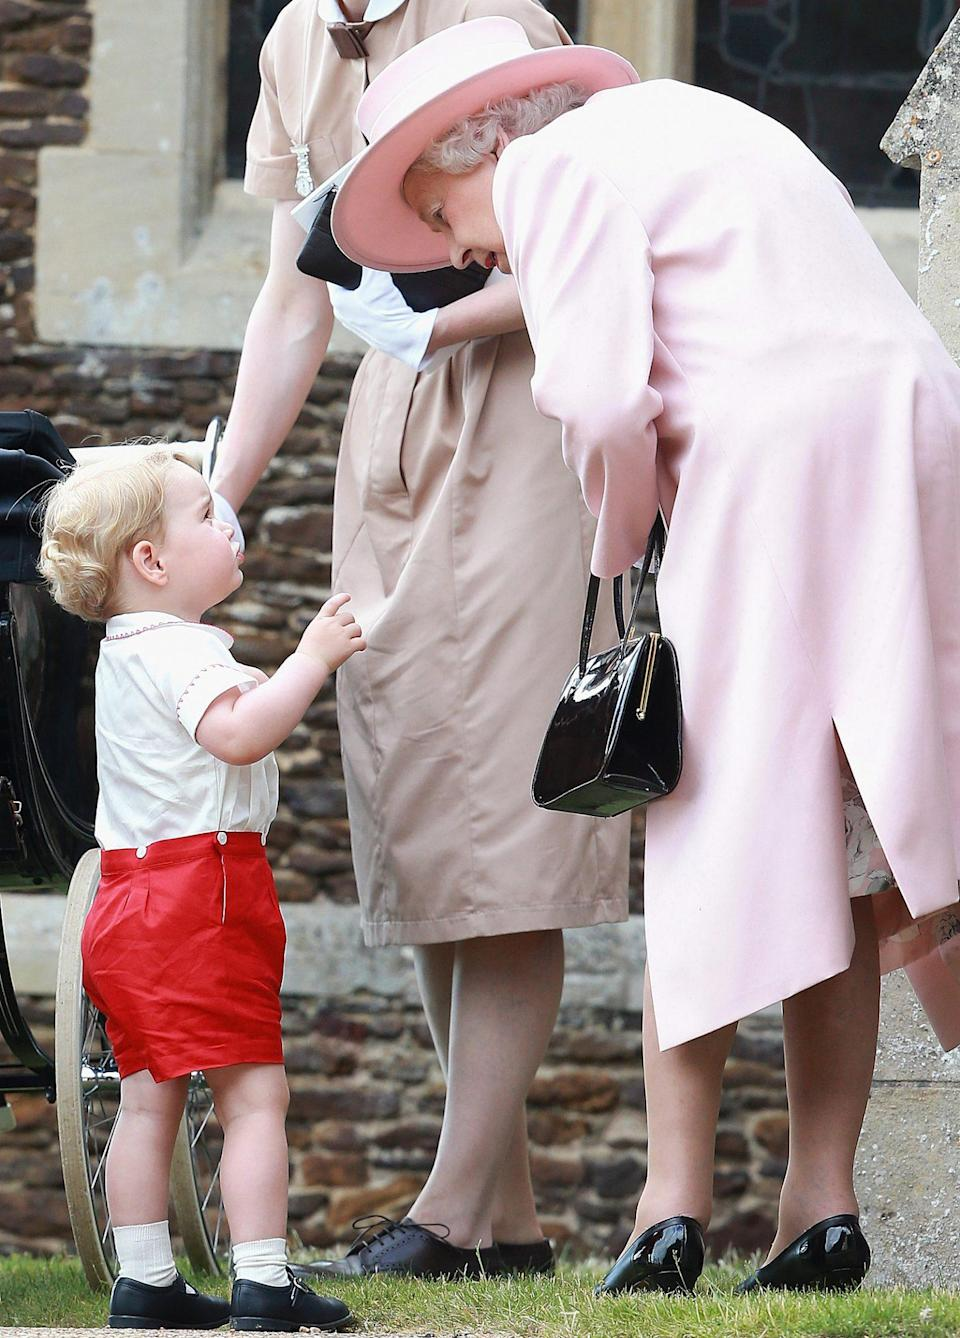 """<p>Back in July 2015, the Queen snuck in some time for a private chat with Prince George, then 2, at the christening of his sister Princess Charlotte on the royals' Sandringham estate.</p> <p>While Jackson never found out what the monarch and her heir's conversation was about, he notes that the Queen """"has an incredible warmth and affection for her grandchildren and great grandchildren, evident by the way she lights up when she is around them. For a photographer, the opportunity to capture these genuine and warm interactions is always so special.""""</p>"""